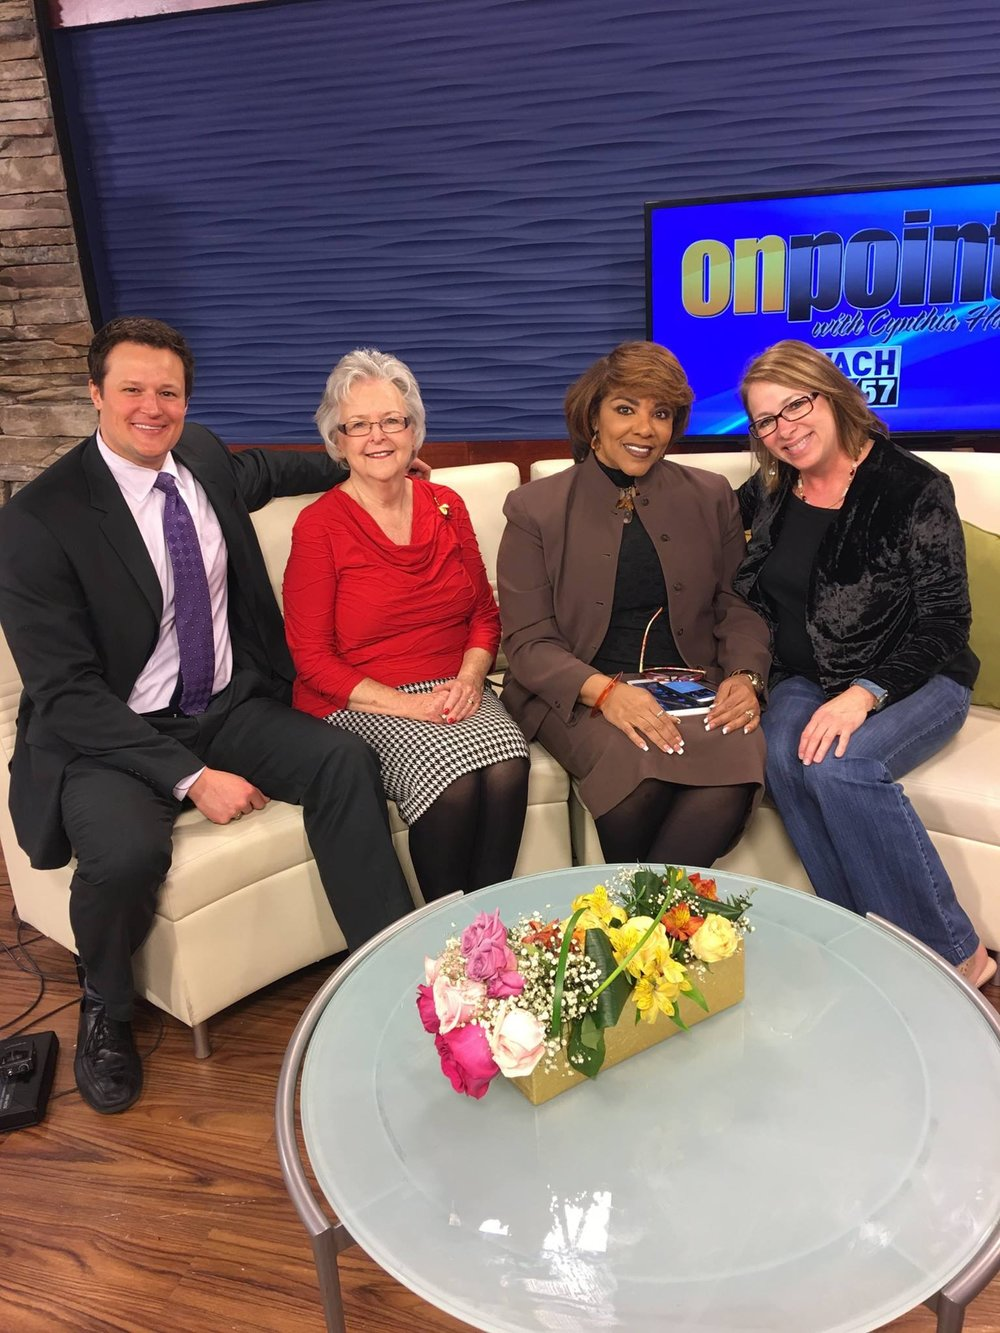 Cynthia in the wach studio with guests3.jpg